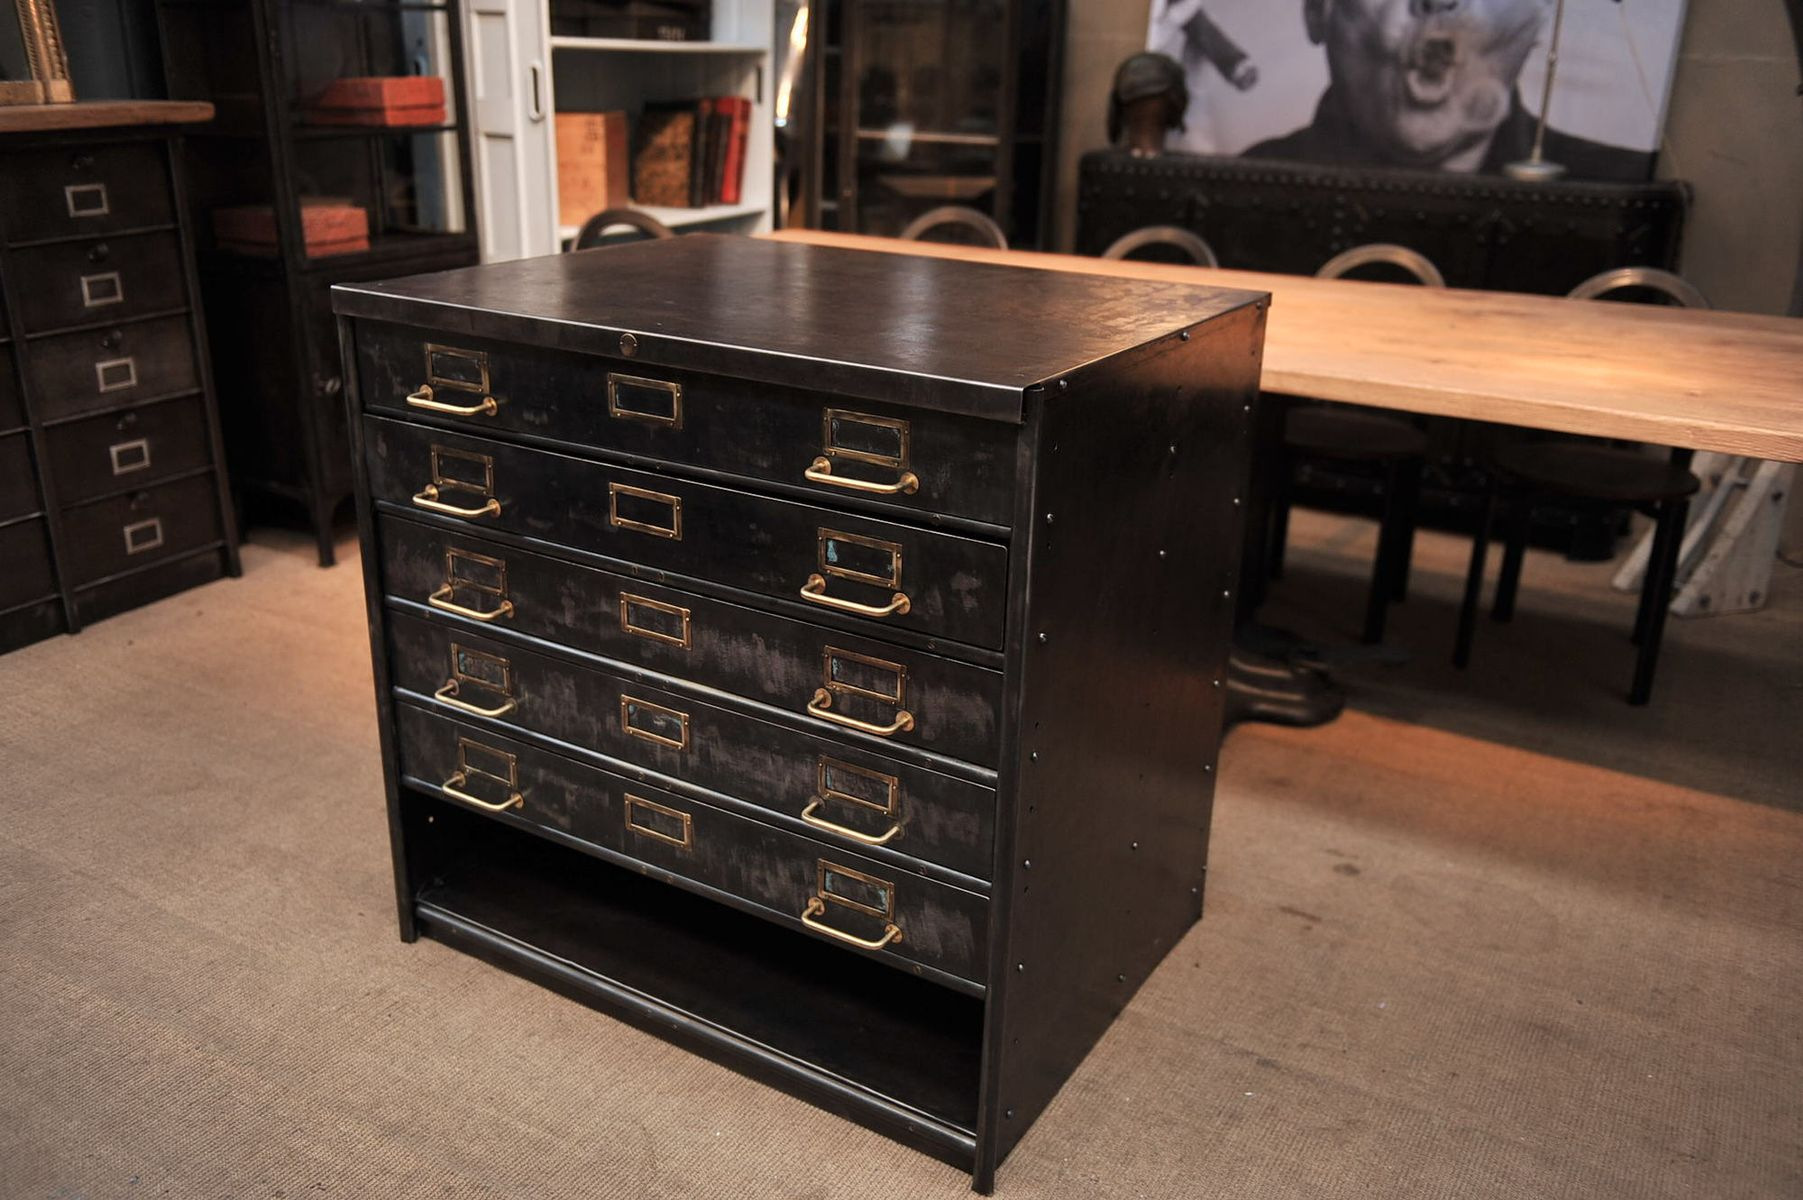 5 Drawer Metal File Cabinet Vintage Industrial Metal Cabinet With 5 Drawers From Roneo For